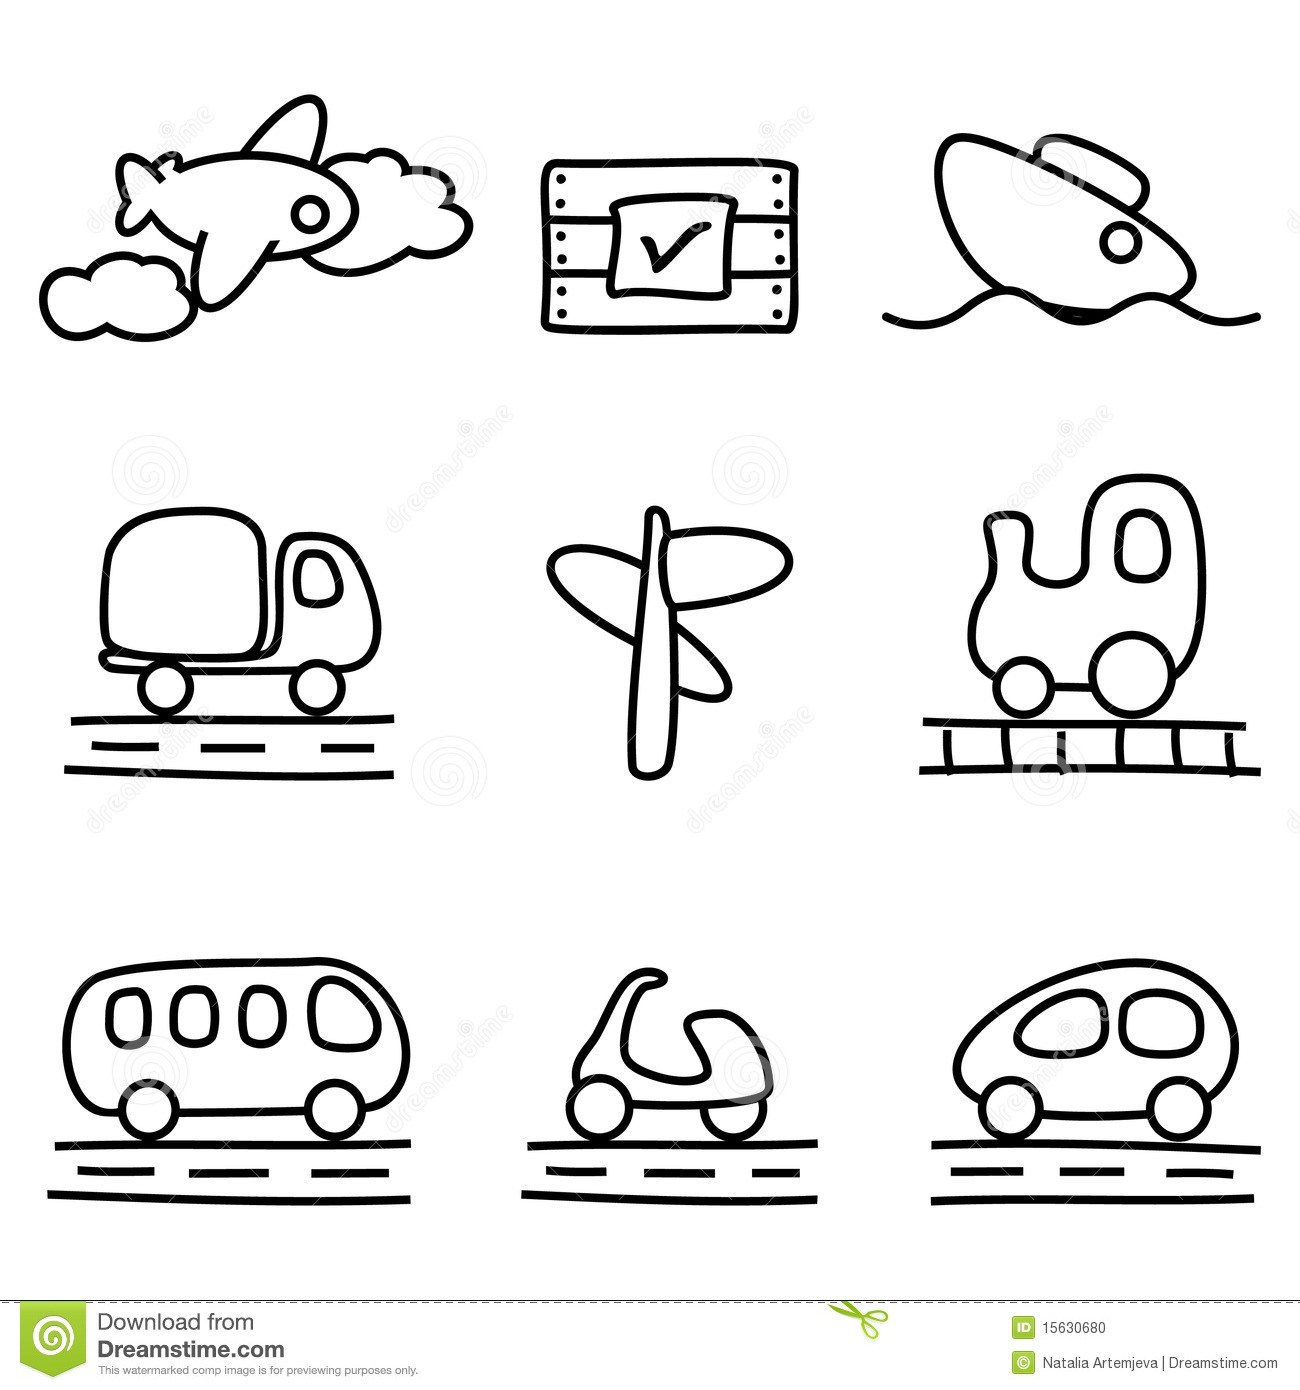 Transport clipart black and white 6 » Clipart Portal.